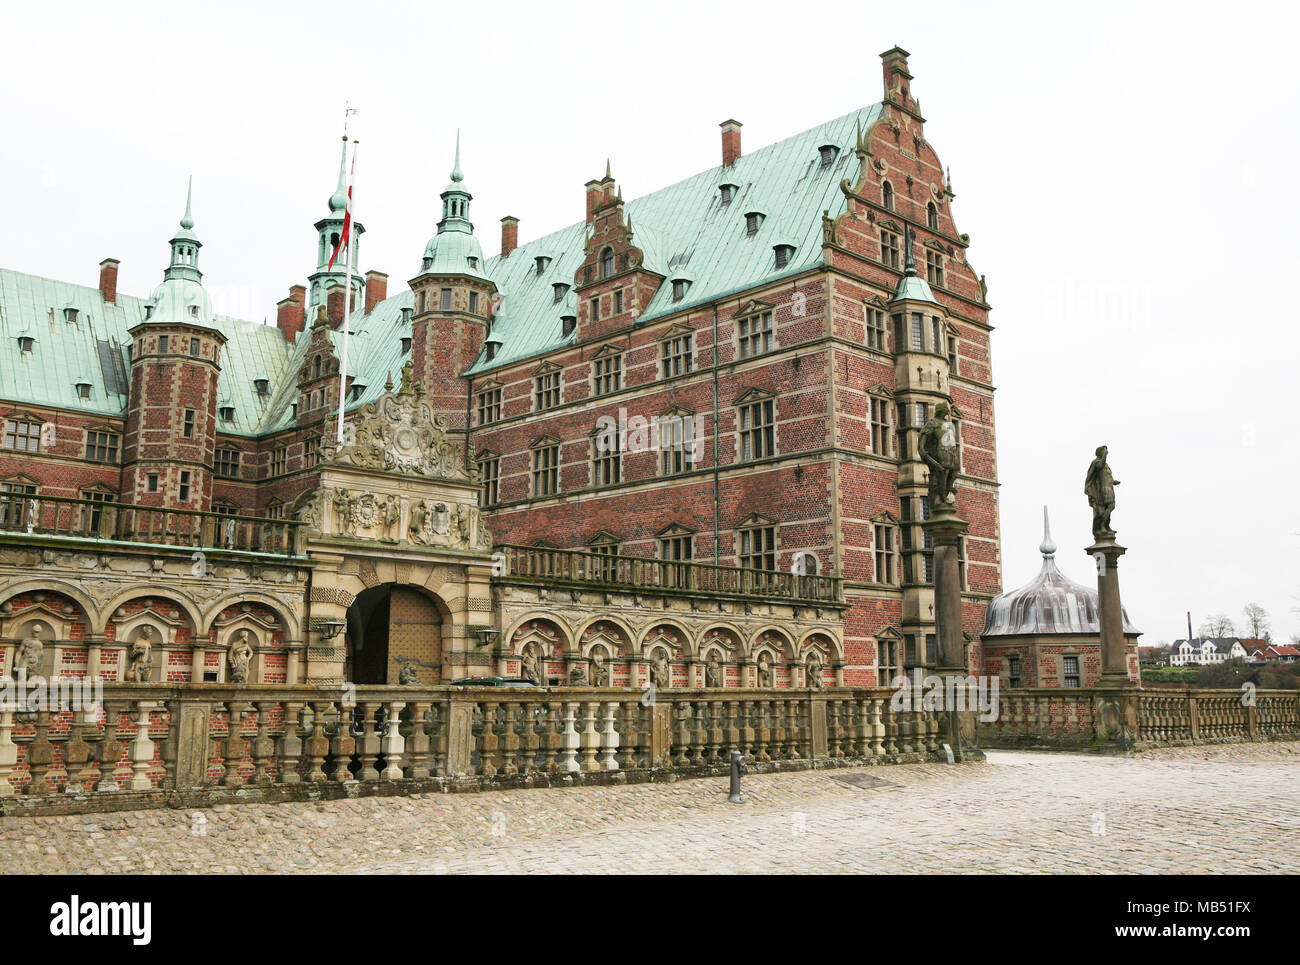 Building at the Hillerod castle, Denmark - Stock Image